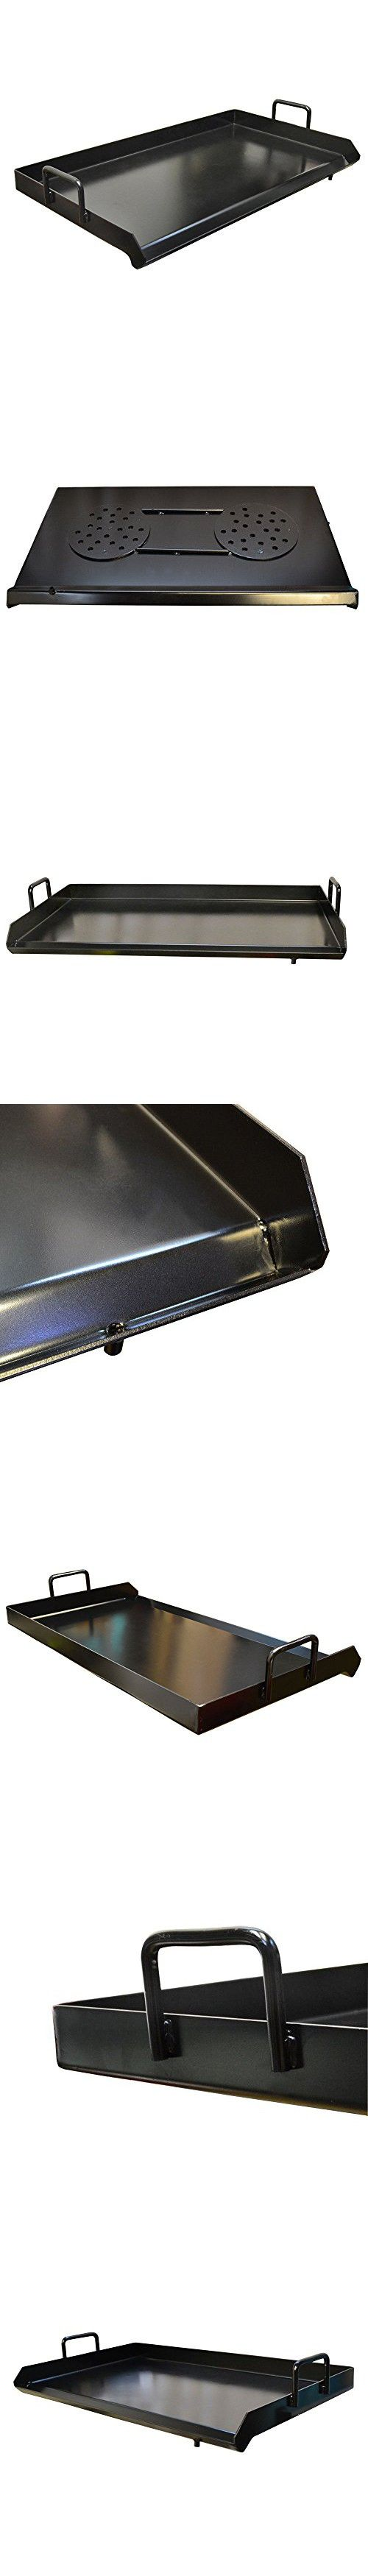 Heavy Duty 32'' Black Steel Flat Top Griddle Grill Plancha Comal Double Burner